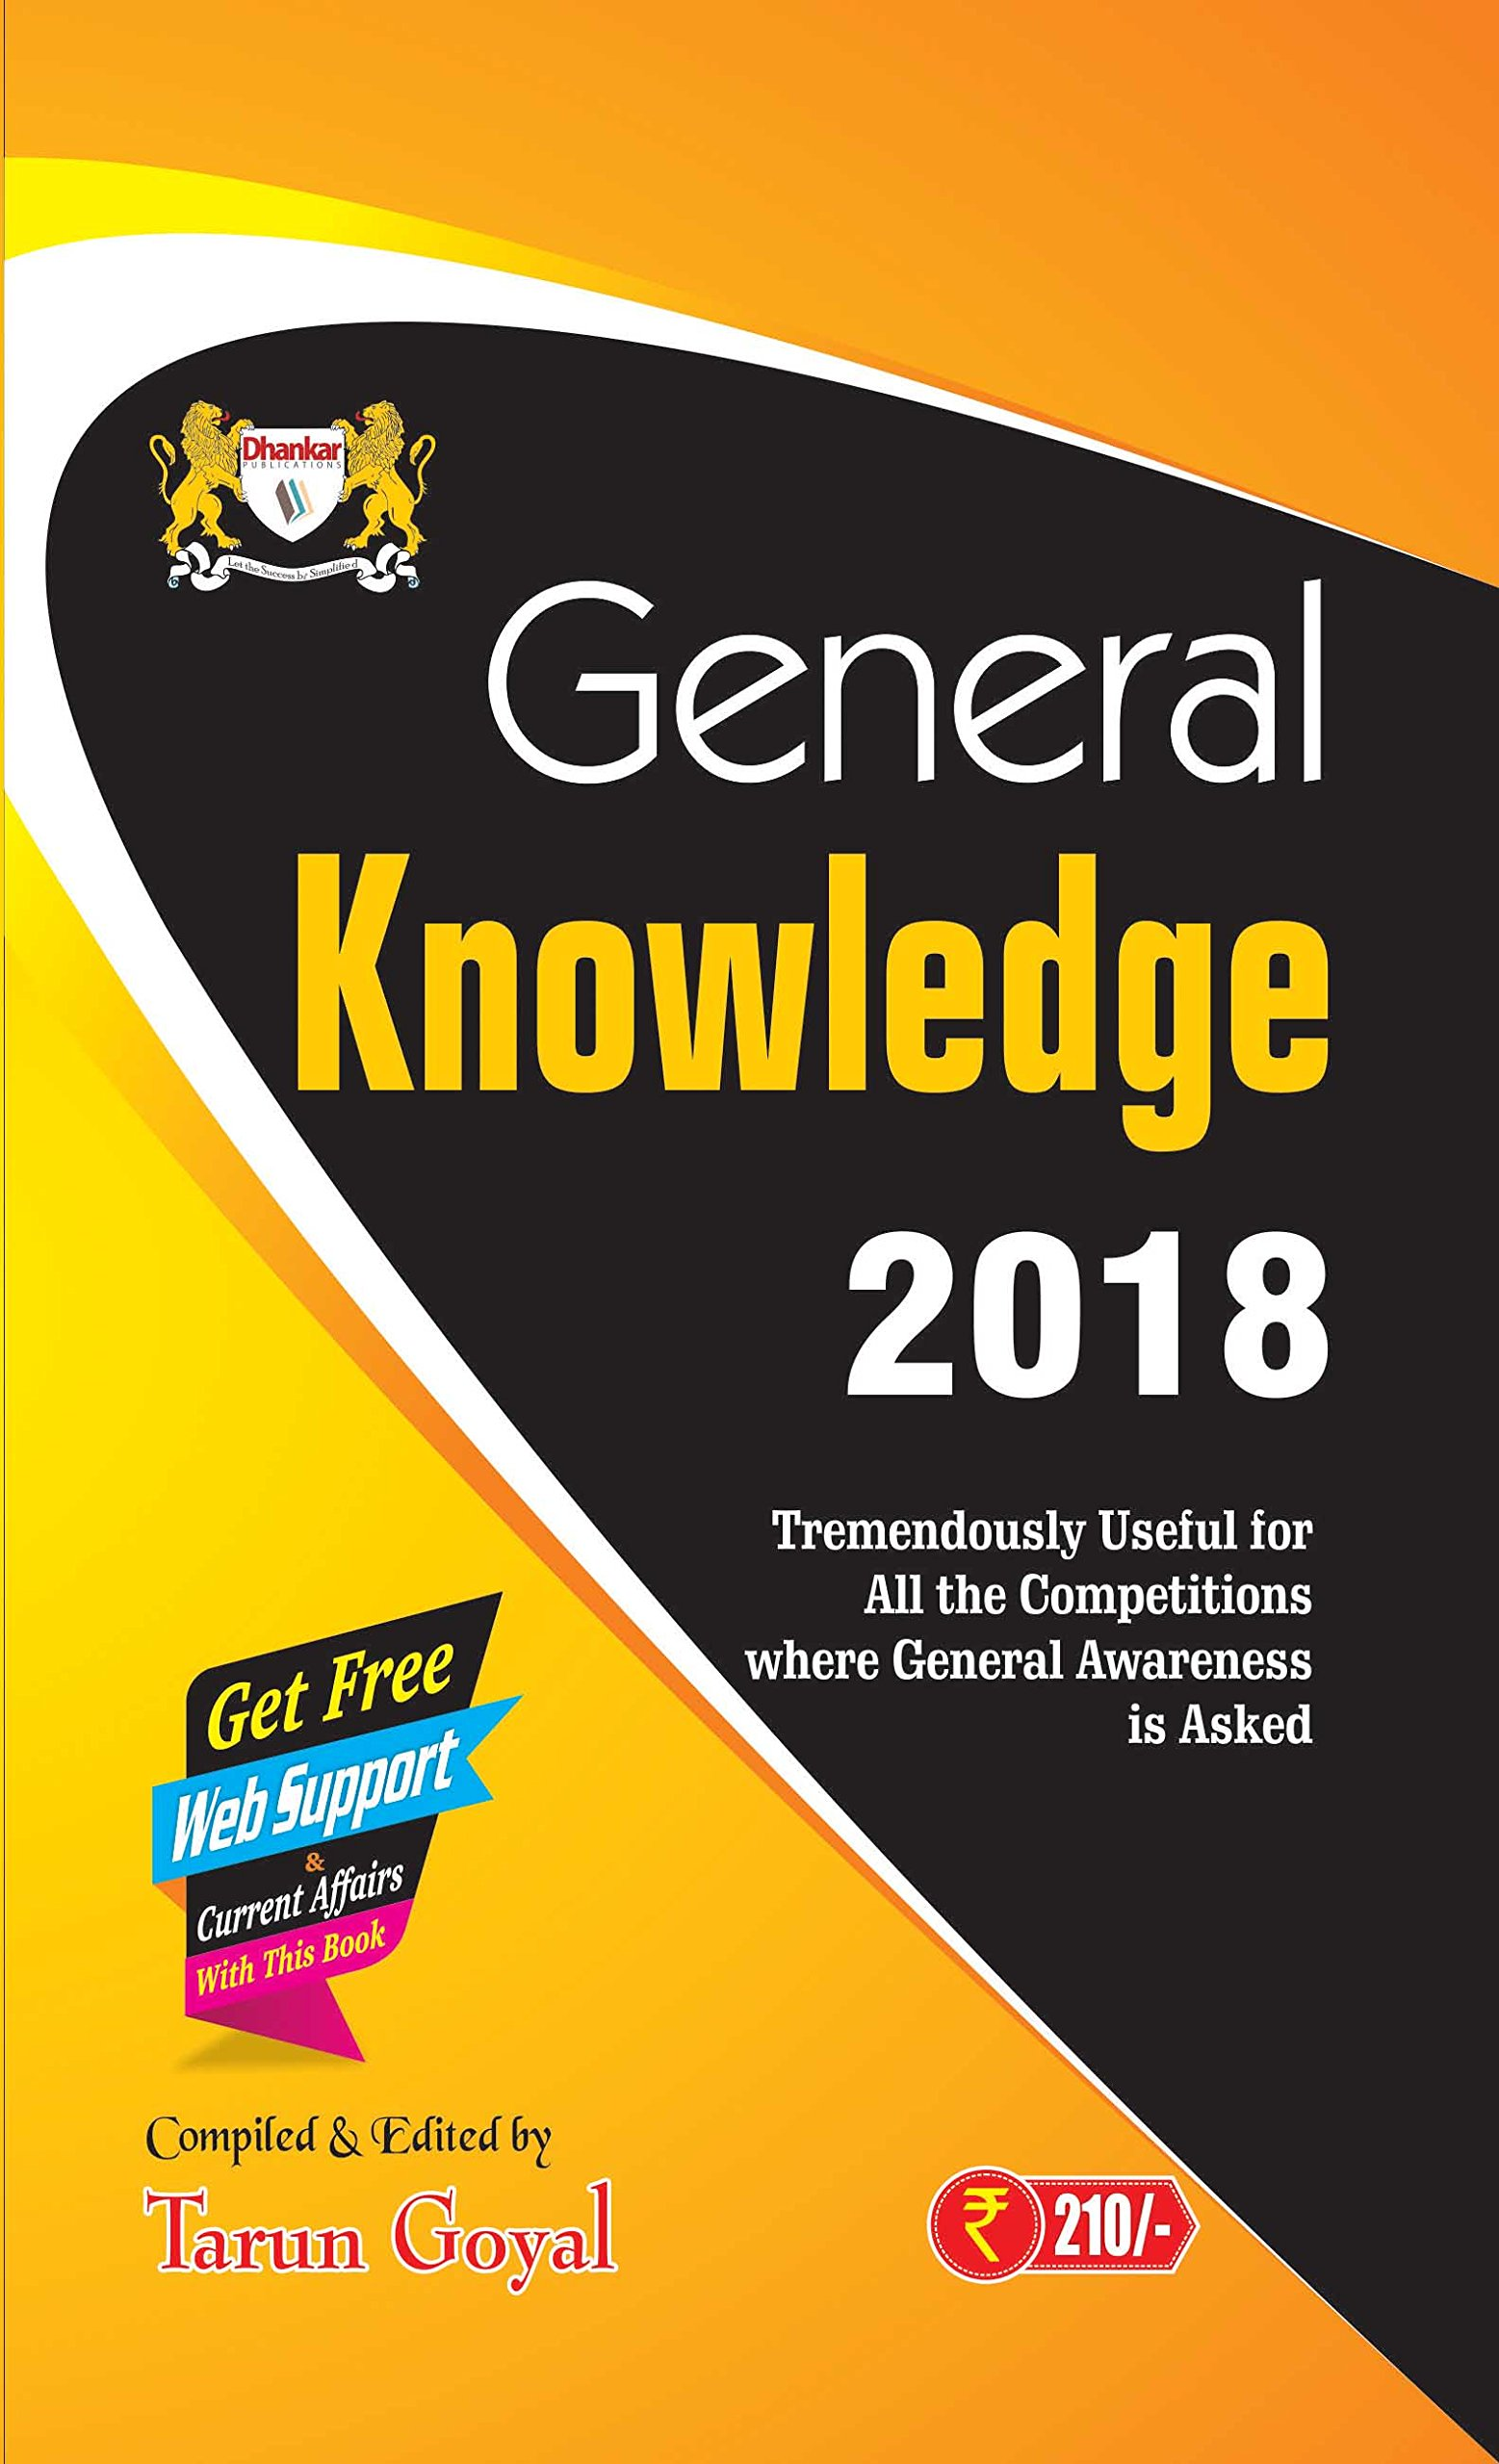 General Knowledge Books Pdf In Marathi 2017